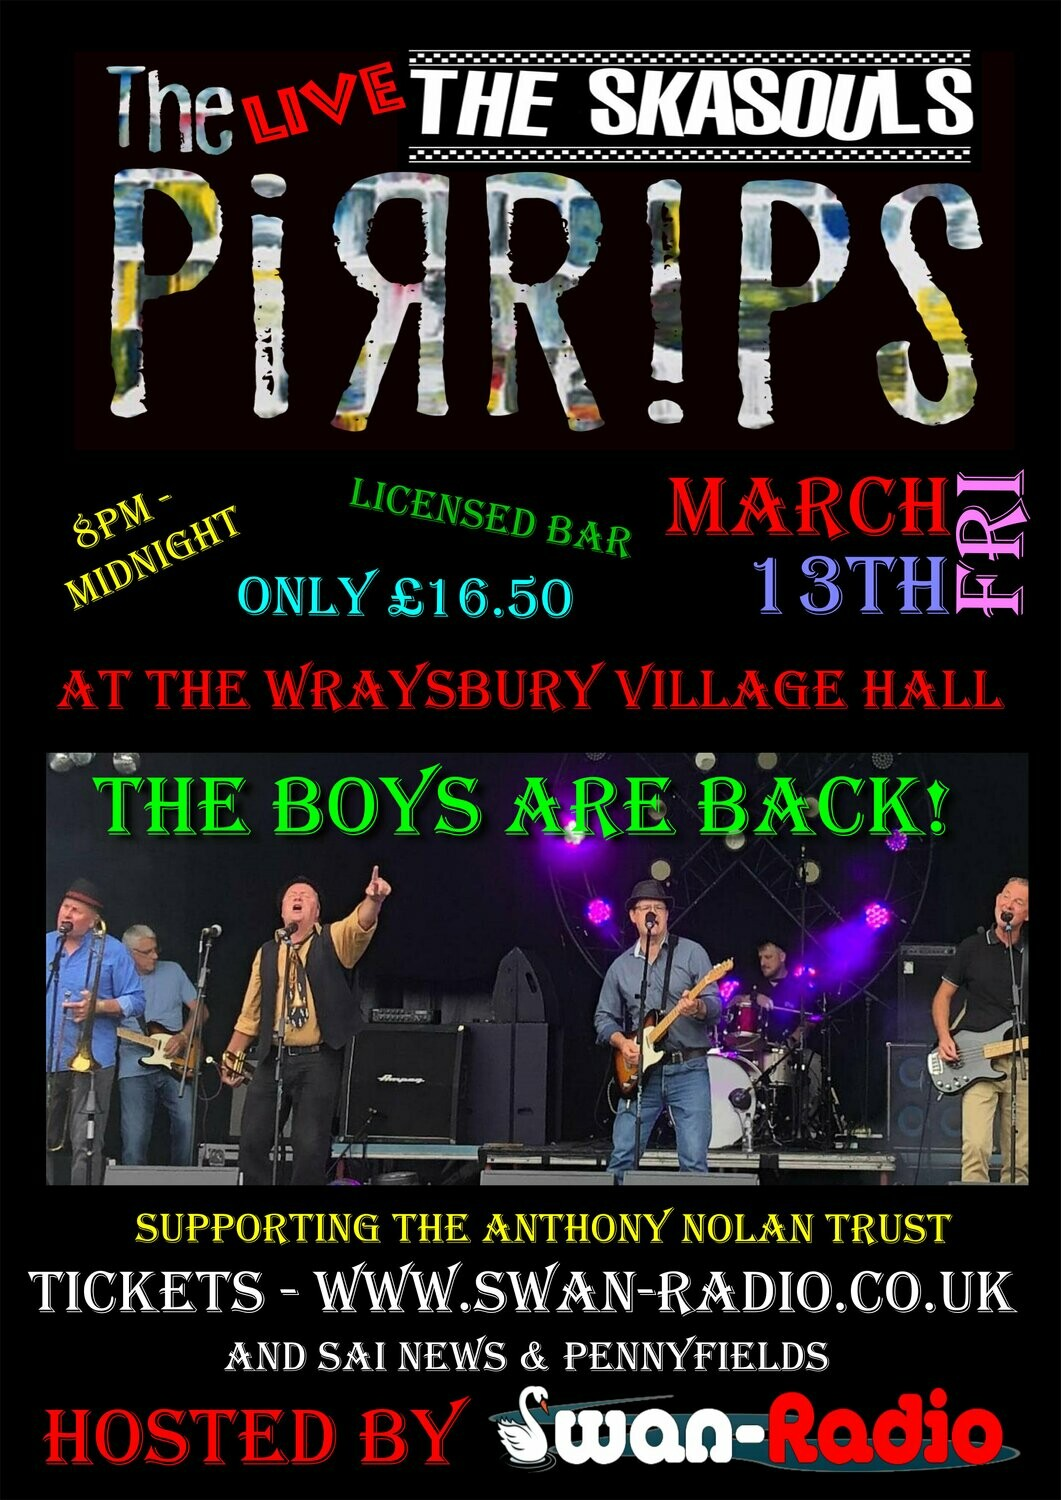 The Pirrips (SkaSouls) Party - 13th March 2020